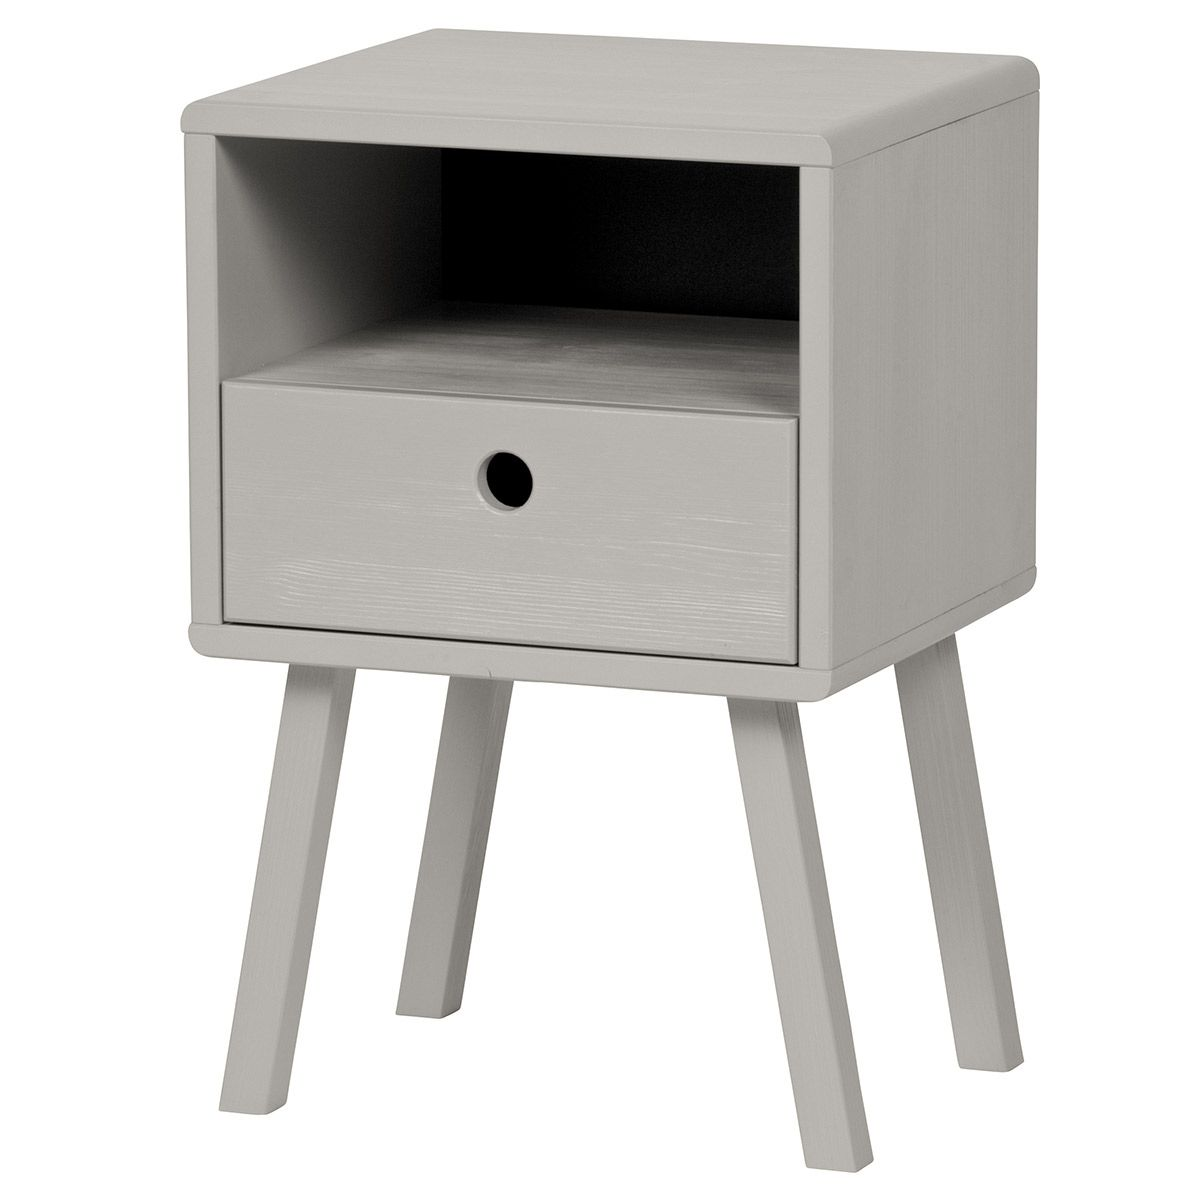 Table de chevet en pin brossé FSC 1 tiroir 1 niche Sammie - Gris chaud